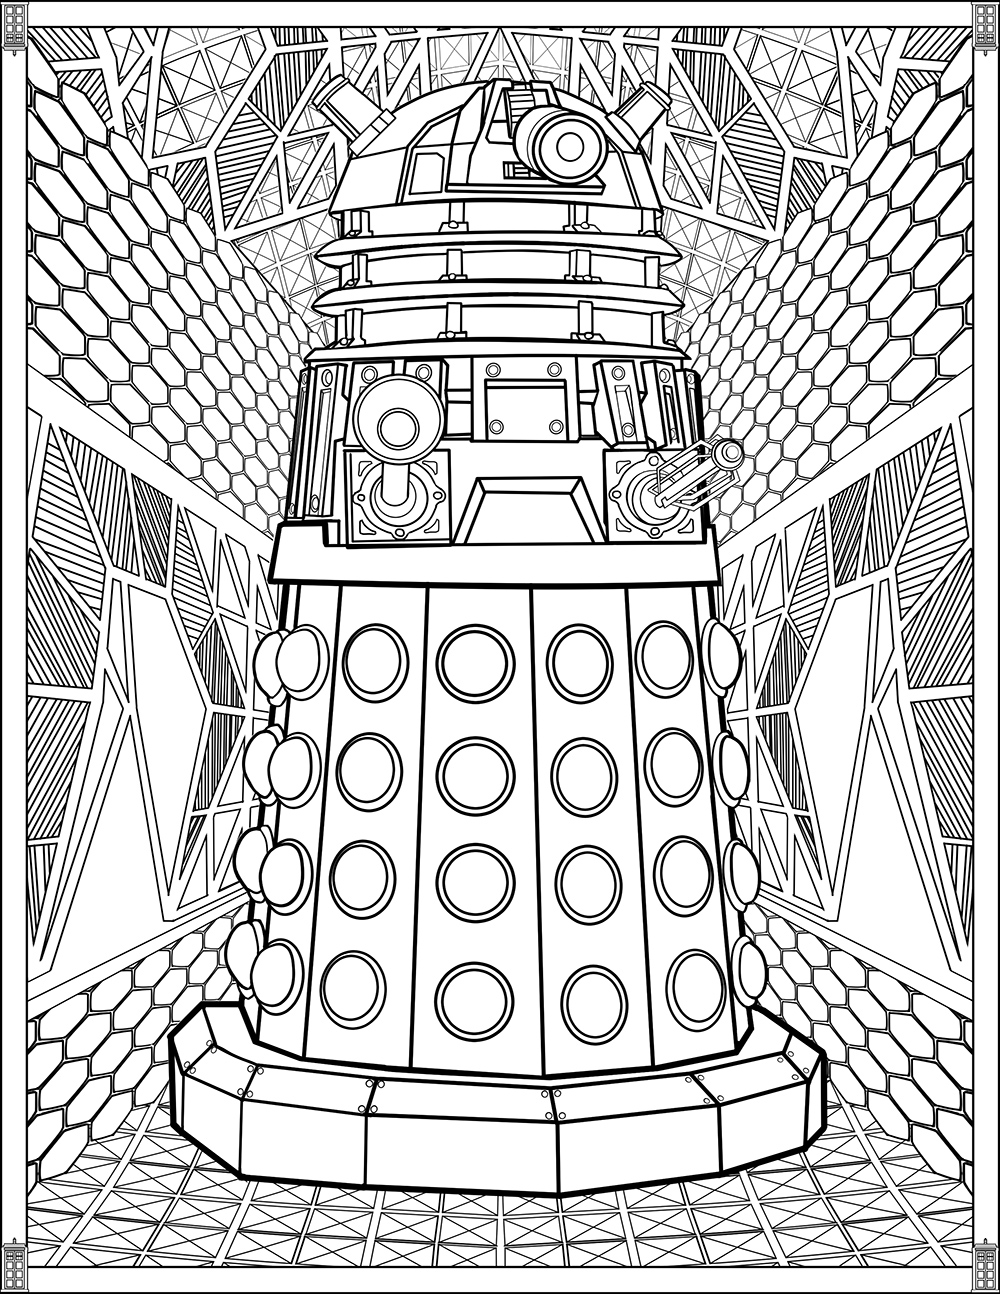 DALEK : Can Daleks color with their manipulator arm ?